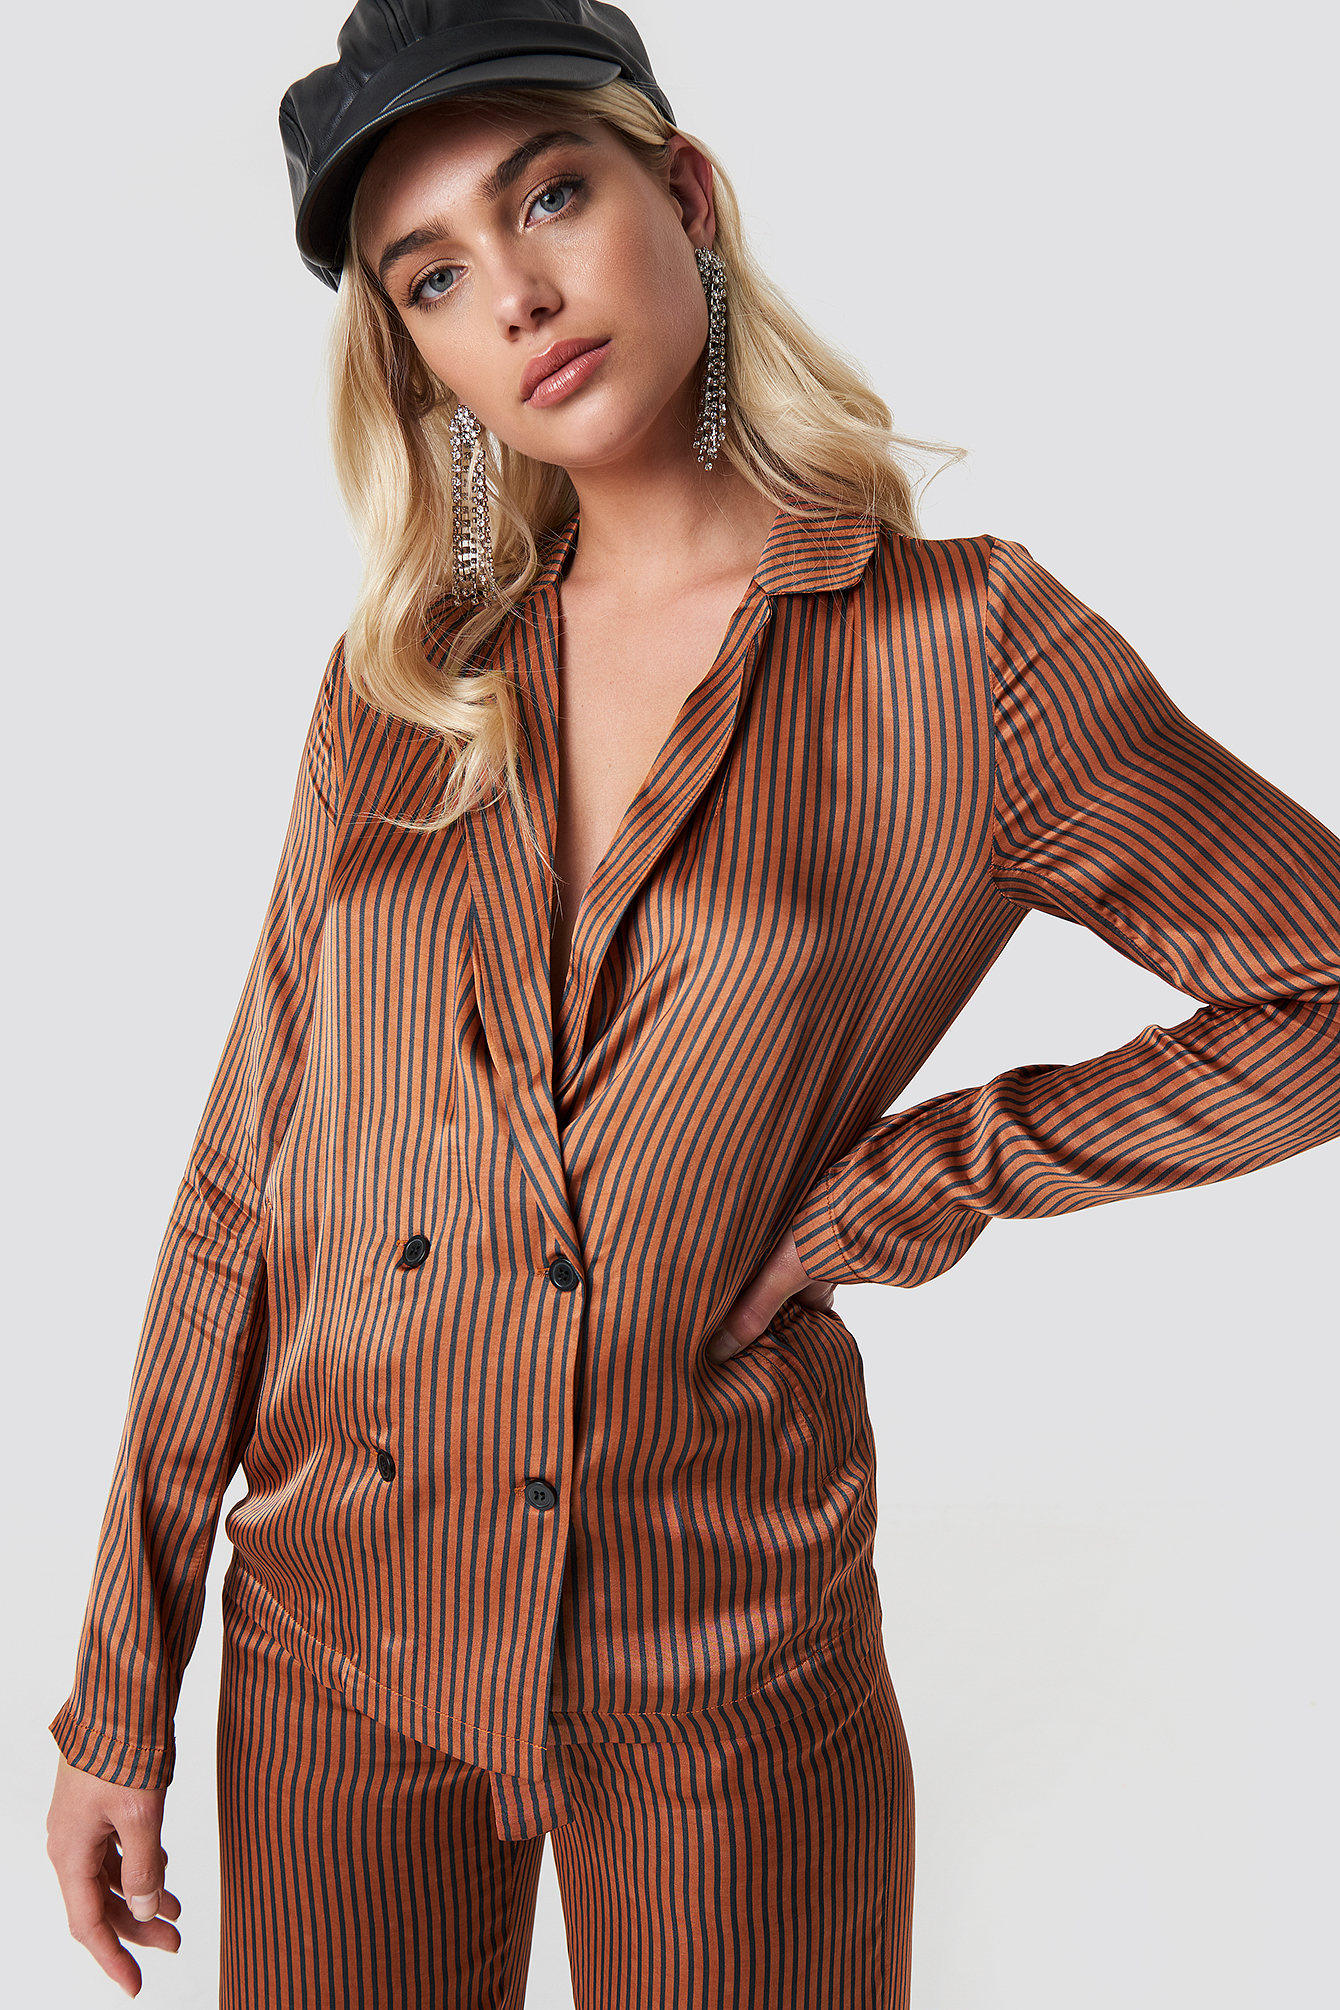 The Veronica shirt by Gestuz features a lapel neckline, double breasted button design, long sleeves, a smooth material and a relaxed fit.